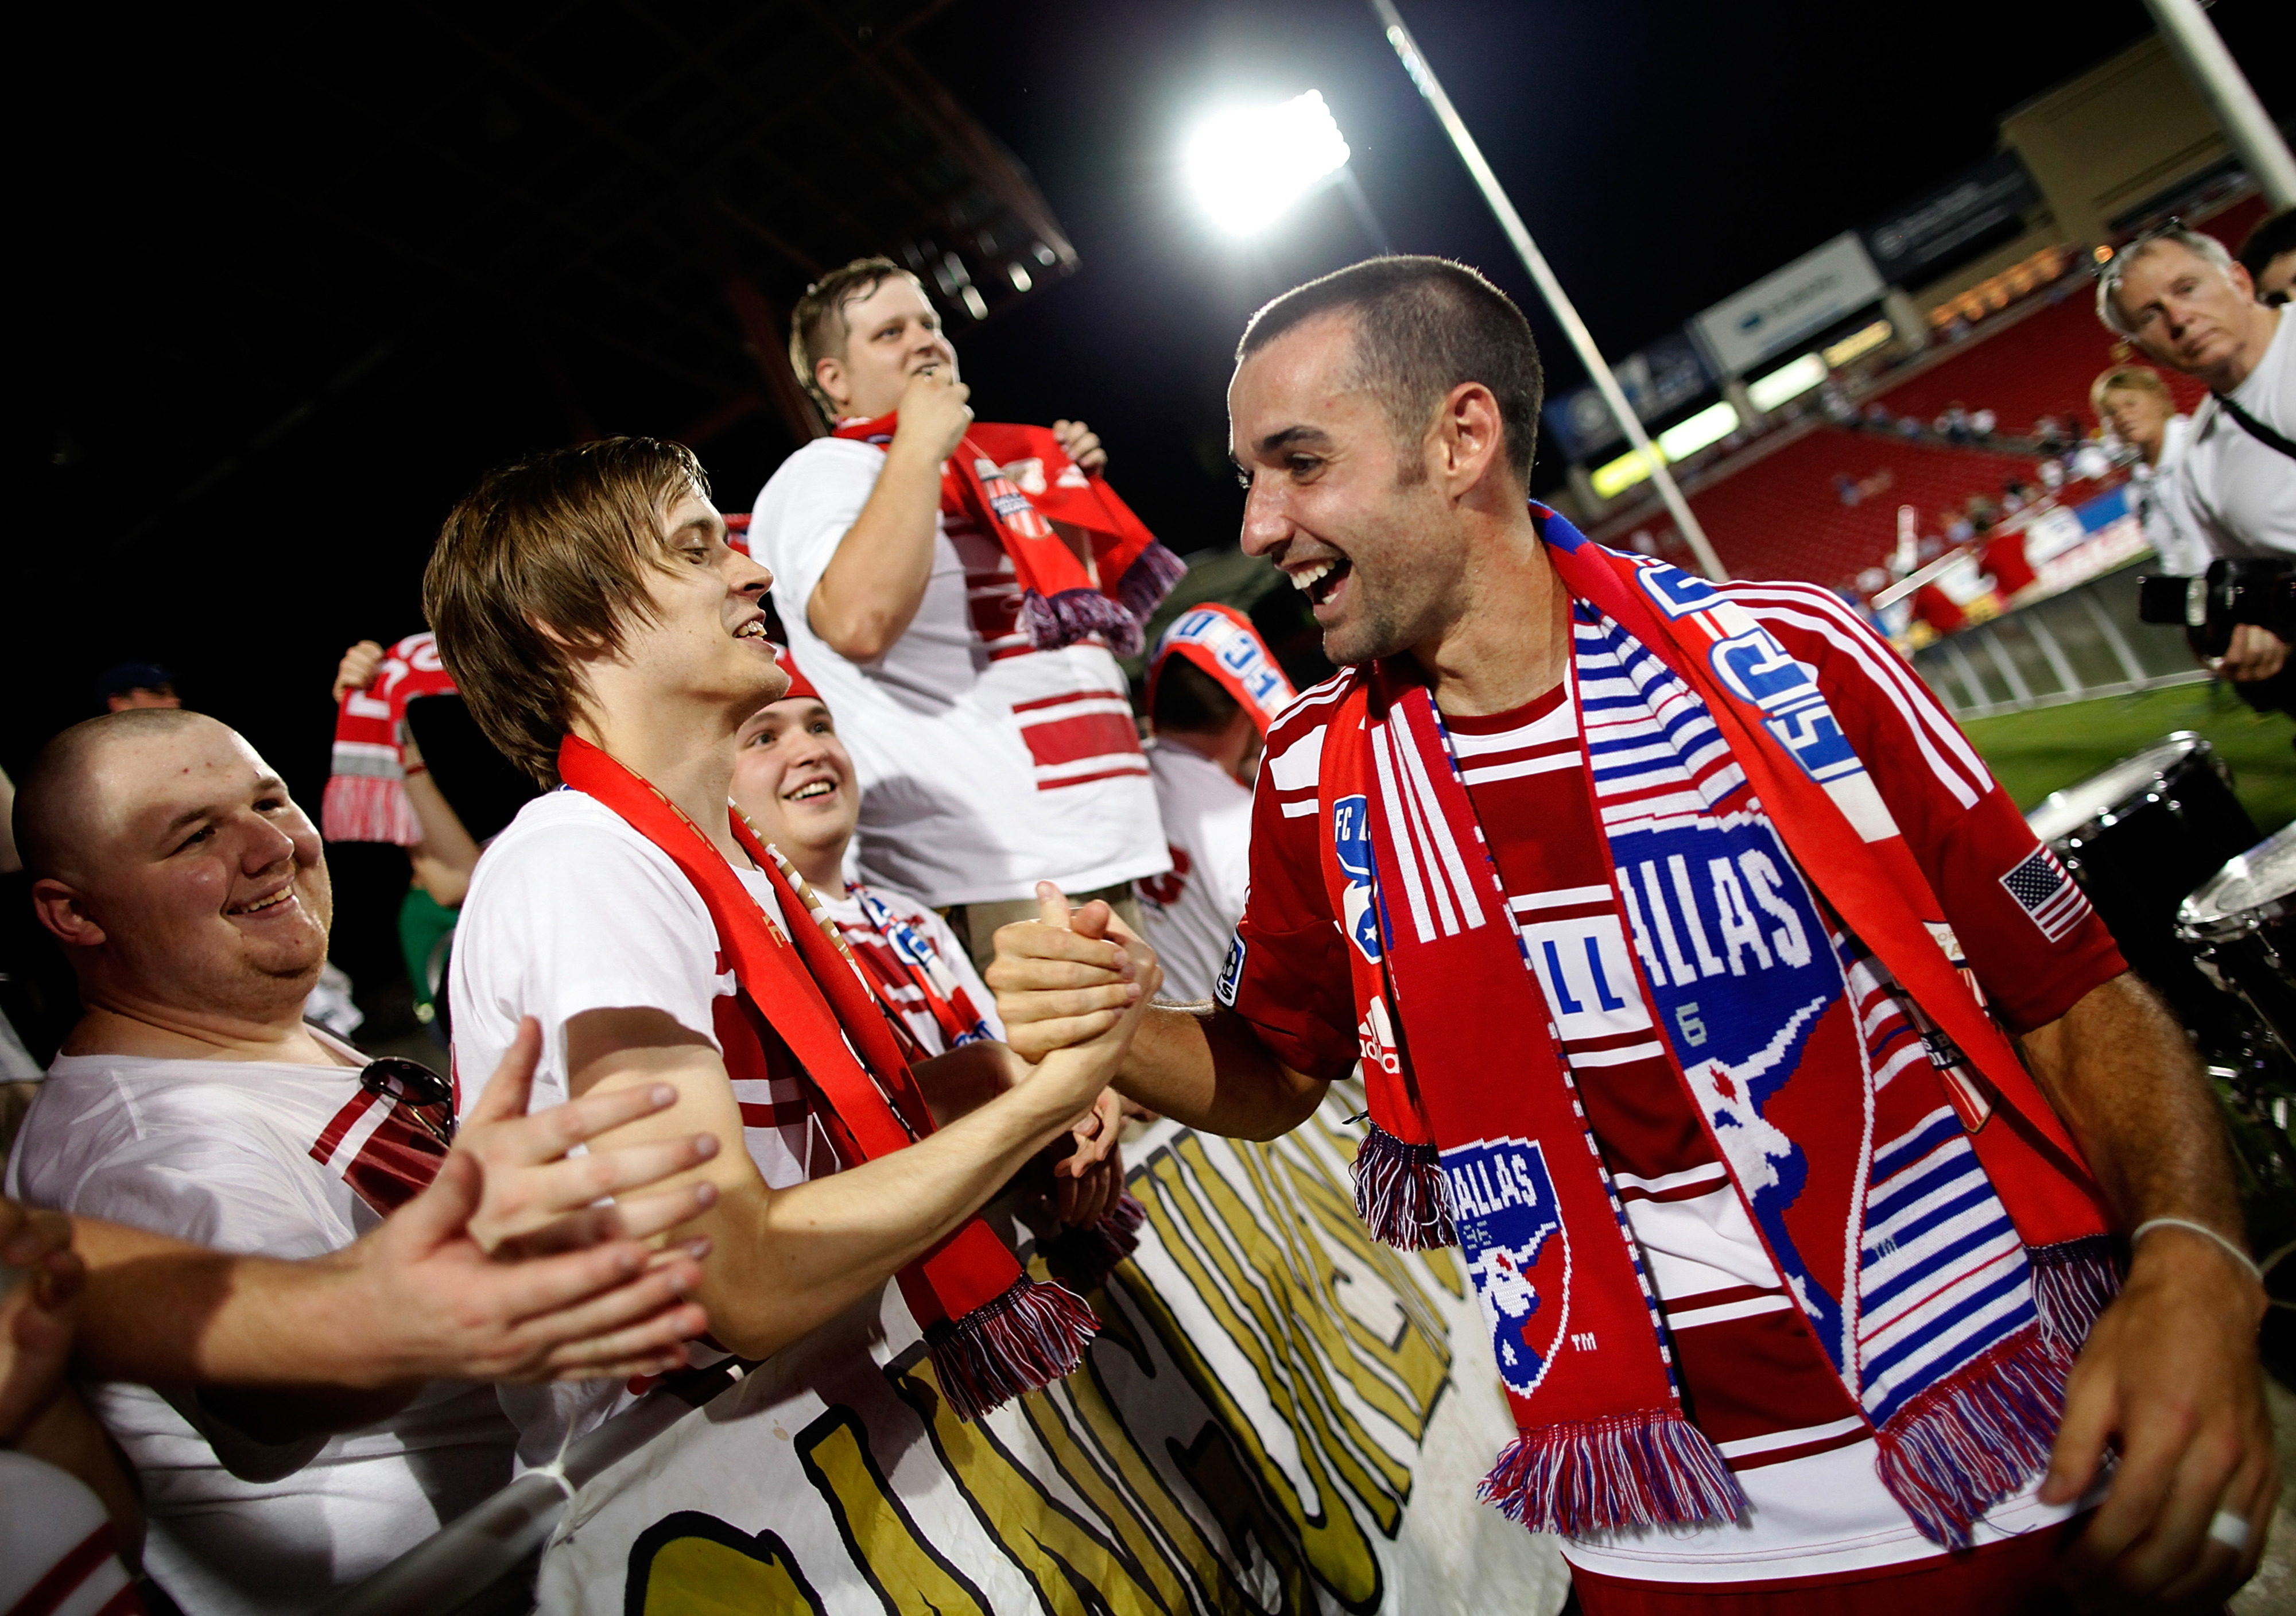 FRISCO, TX - JULY 21:  Andrew Jacobson #4 of the FC Dallas celebrates with fans after FC Dallas beat the Portland Timbers 5-0 at FC Dallas Stadium on July 21, 2012 in Frisco, Texas.  (Photo by Tom Pennington/Getty Images)